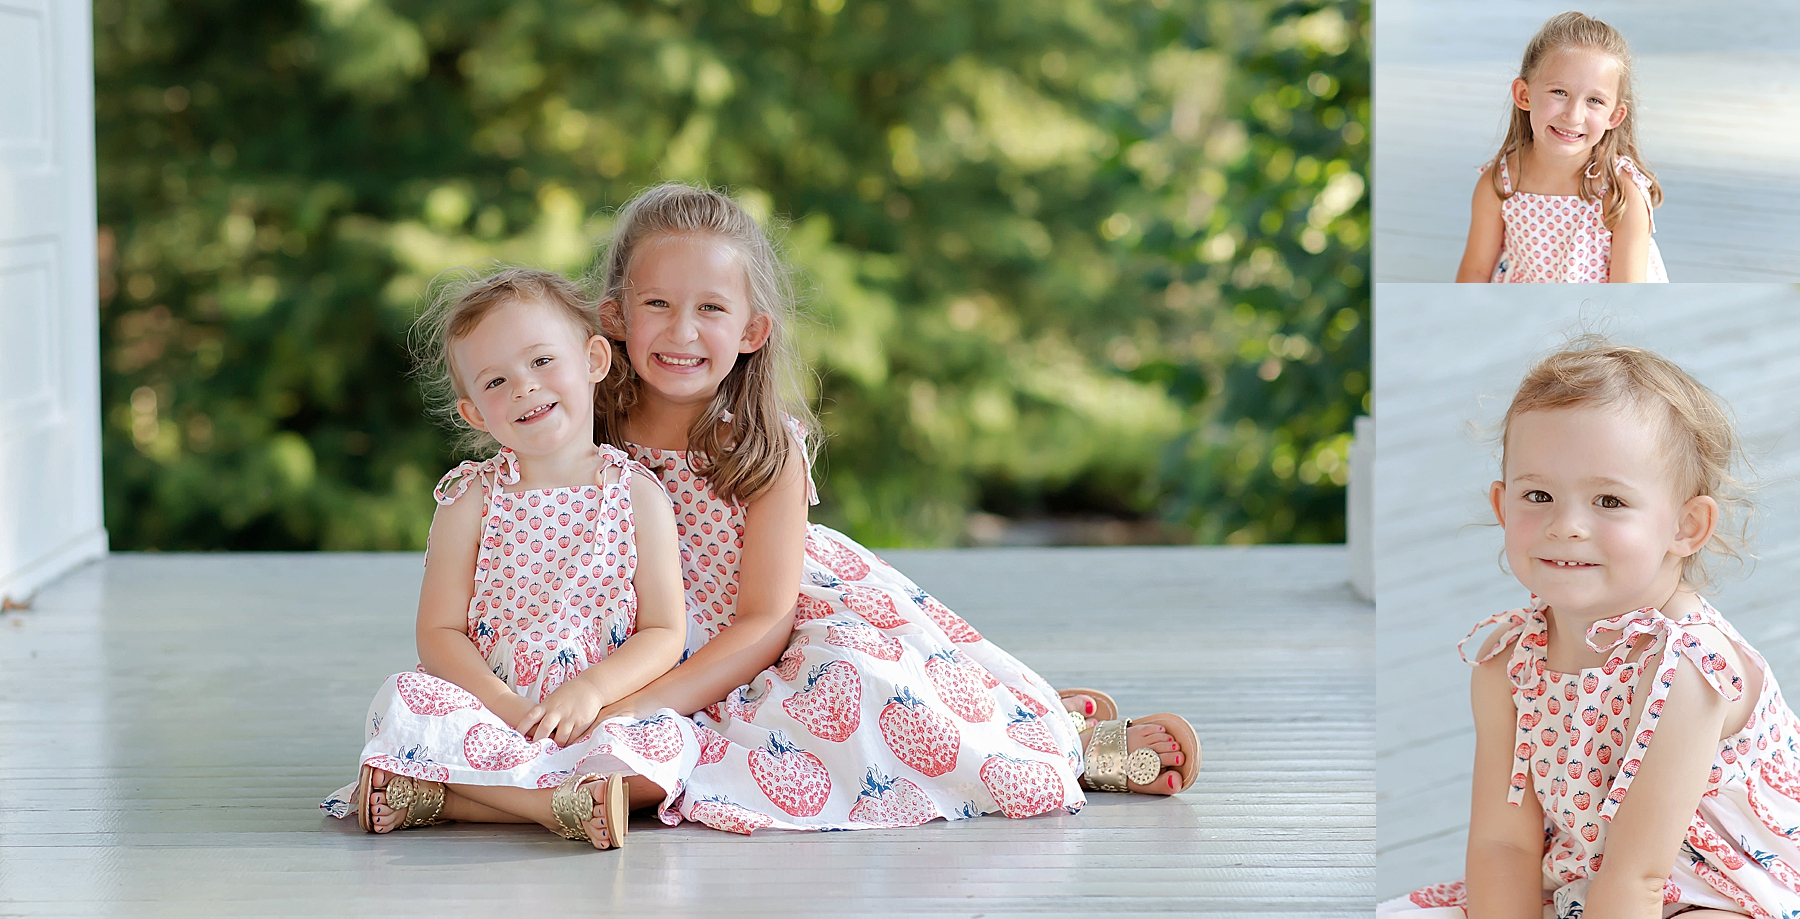 a photo of little girls on a porch how to take good pictures kristina rose photography